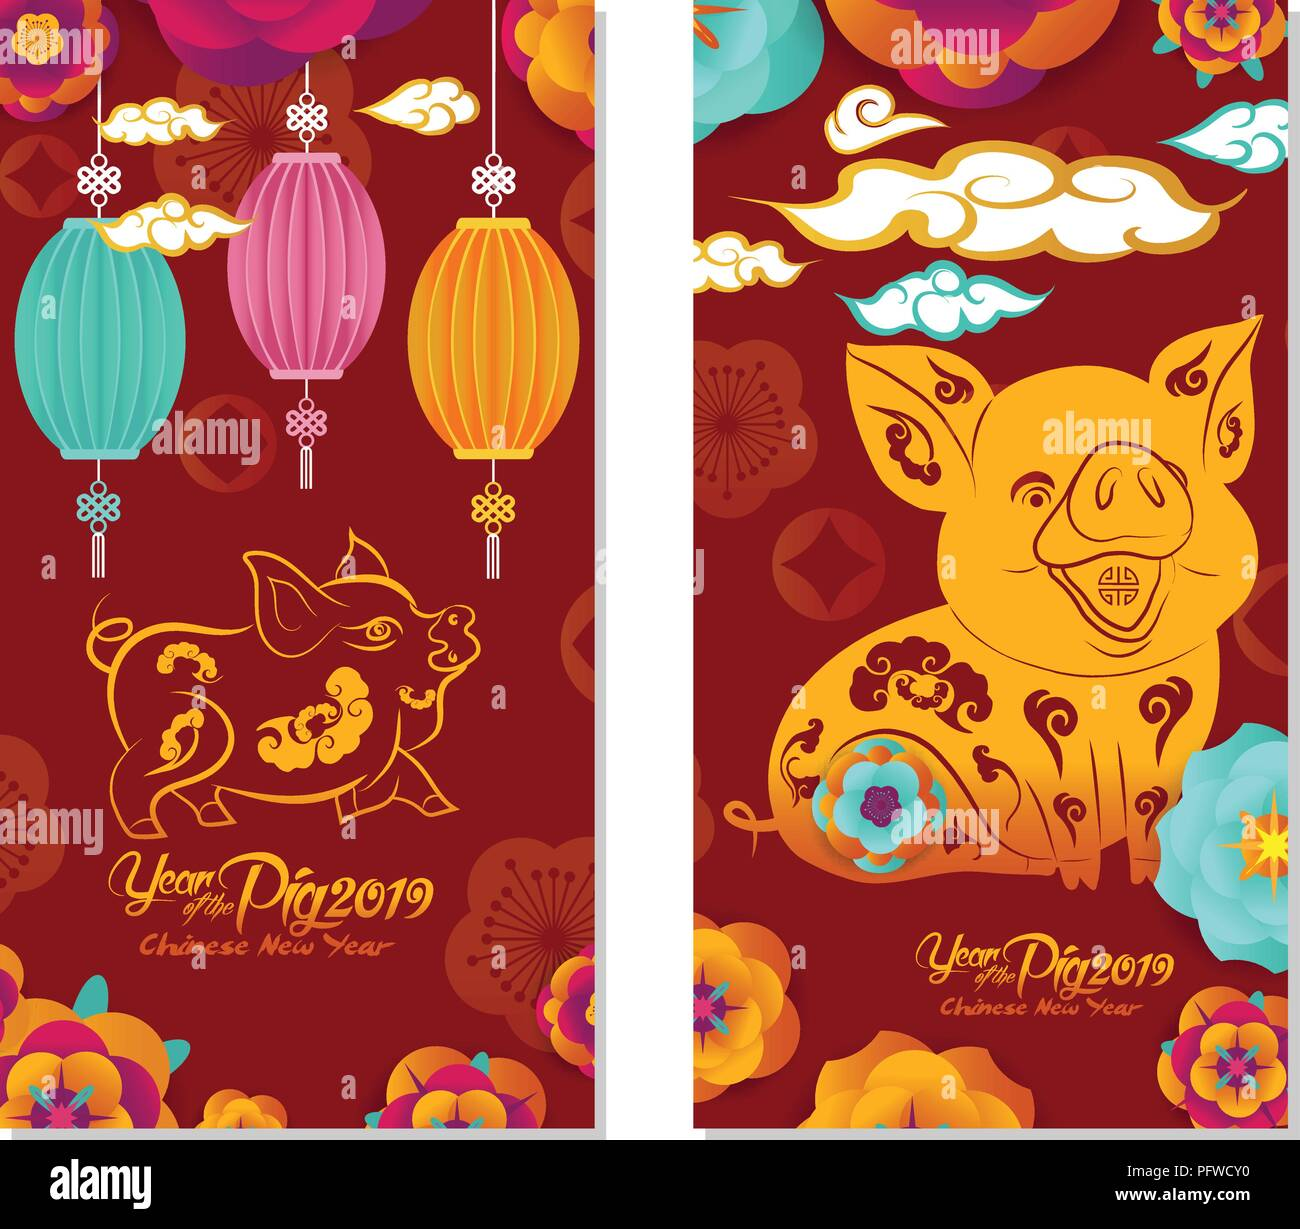 2019 Chinese New Year Greeting Card Two Sides Poster Flyer